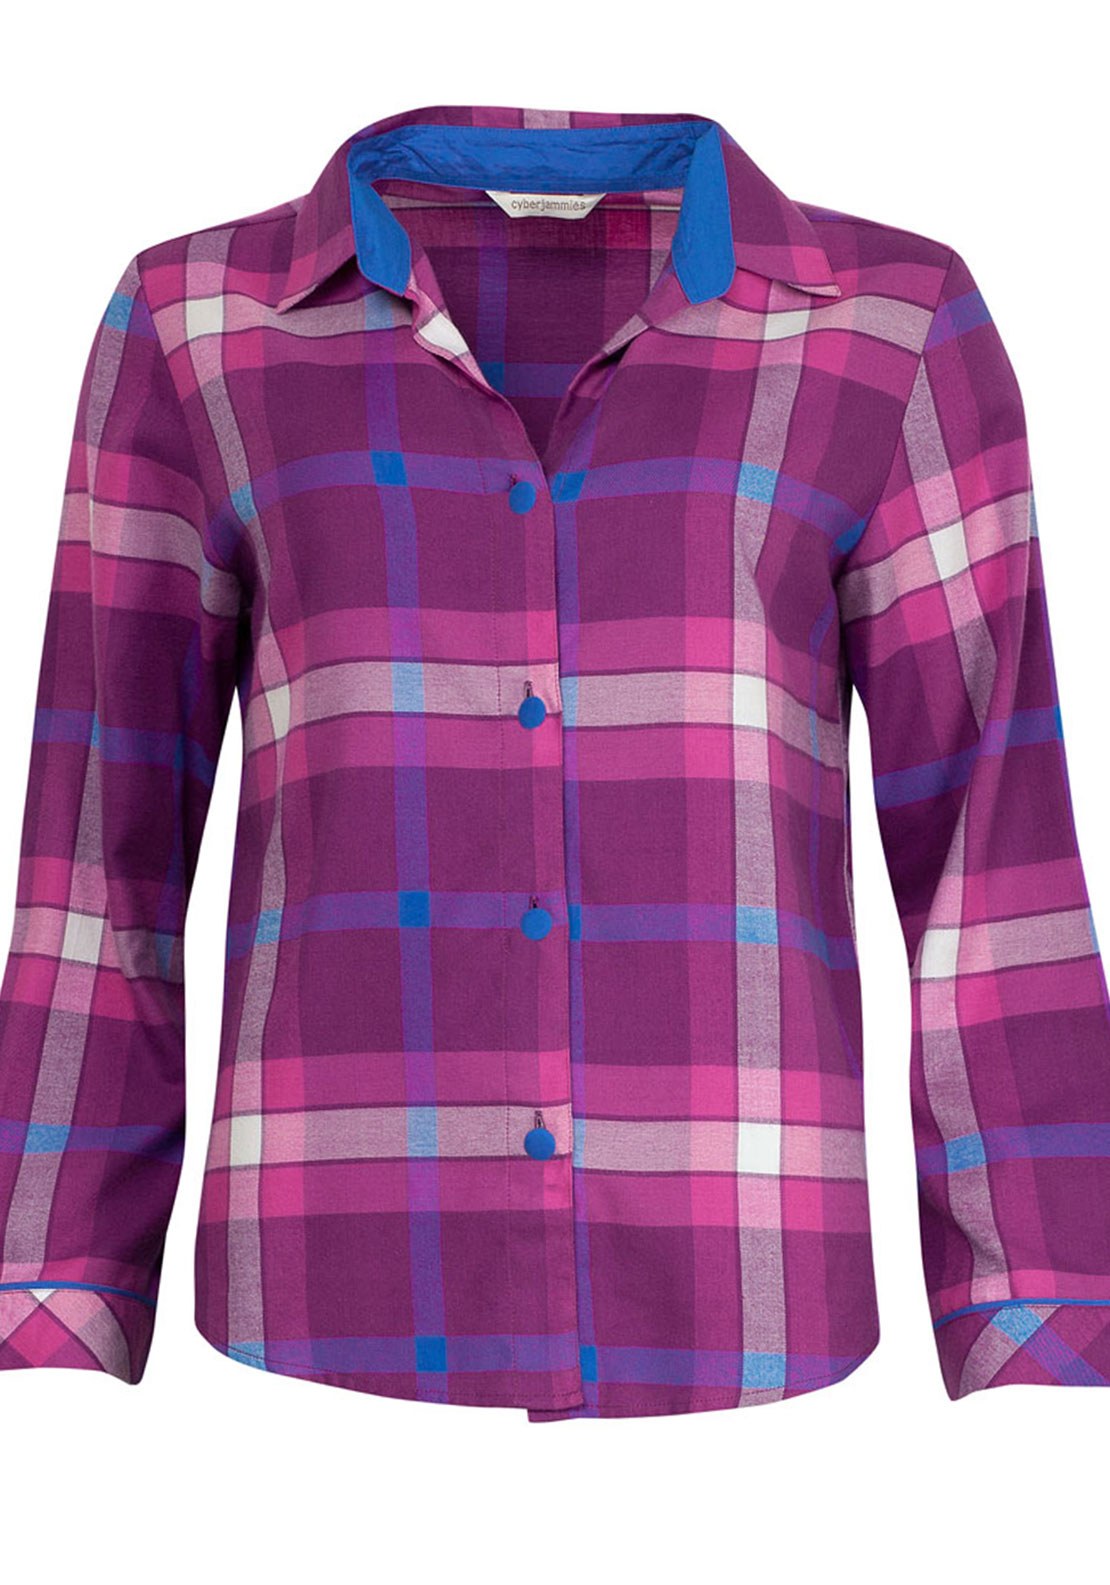 Cyberjammies Magenta Madness Checked Pyjama Top, Magenta Pink